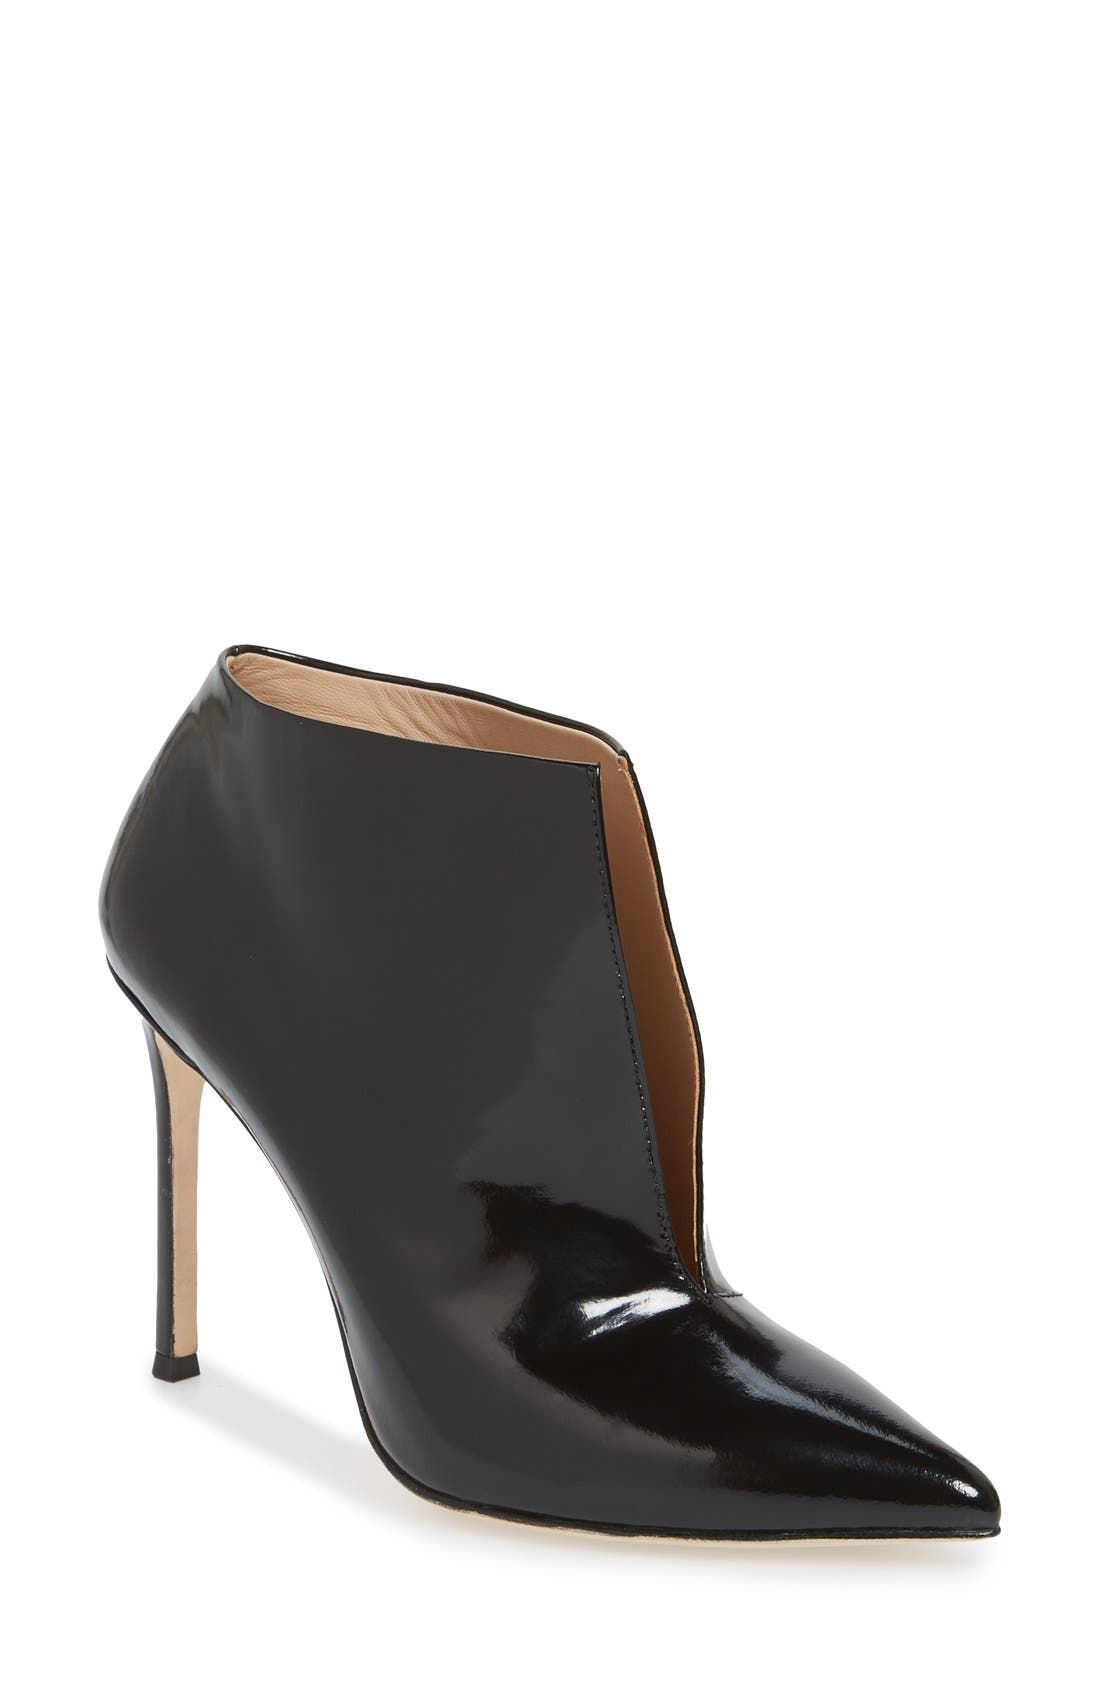 Alternate Image 1 Selected - Pour la Victoire 'Calinda' Split Vamp Pointy Toe Pump (Women)